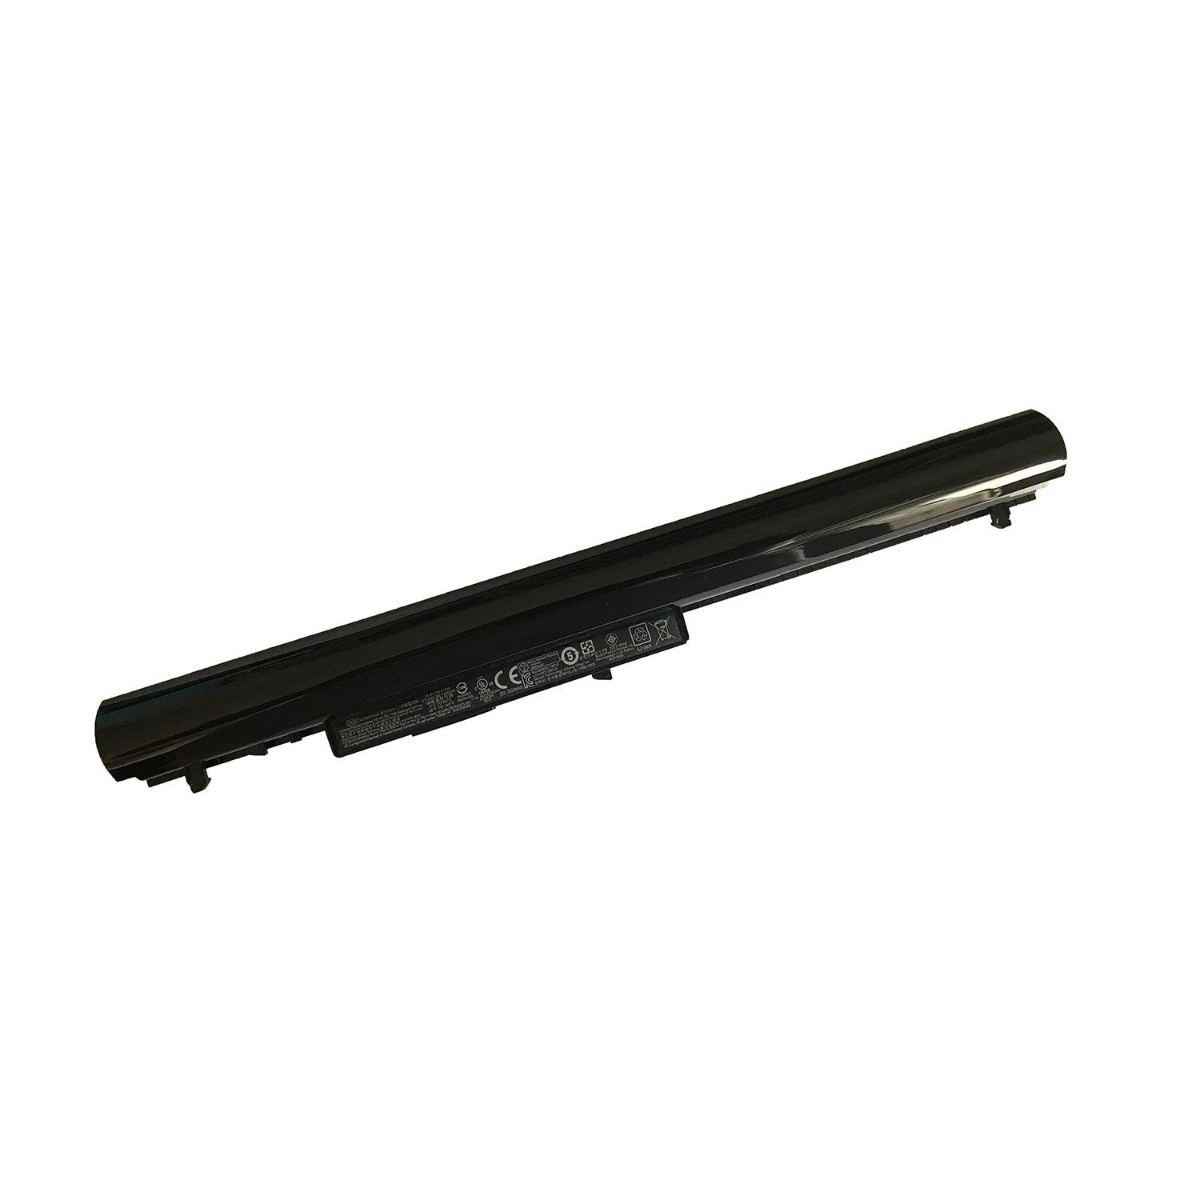 Μπαταρία Laptop - Battery for HP 15-R010NX 15-R010SE 15-R010SI 15-R010ST 15-R010SW 15-R010TU 15-R010TX 15-R011DX 15-R011NA OEM Υψηλής ποιότητας (Κωδ.1-BAT0002)